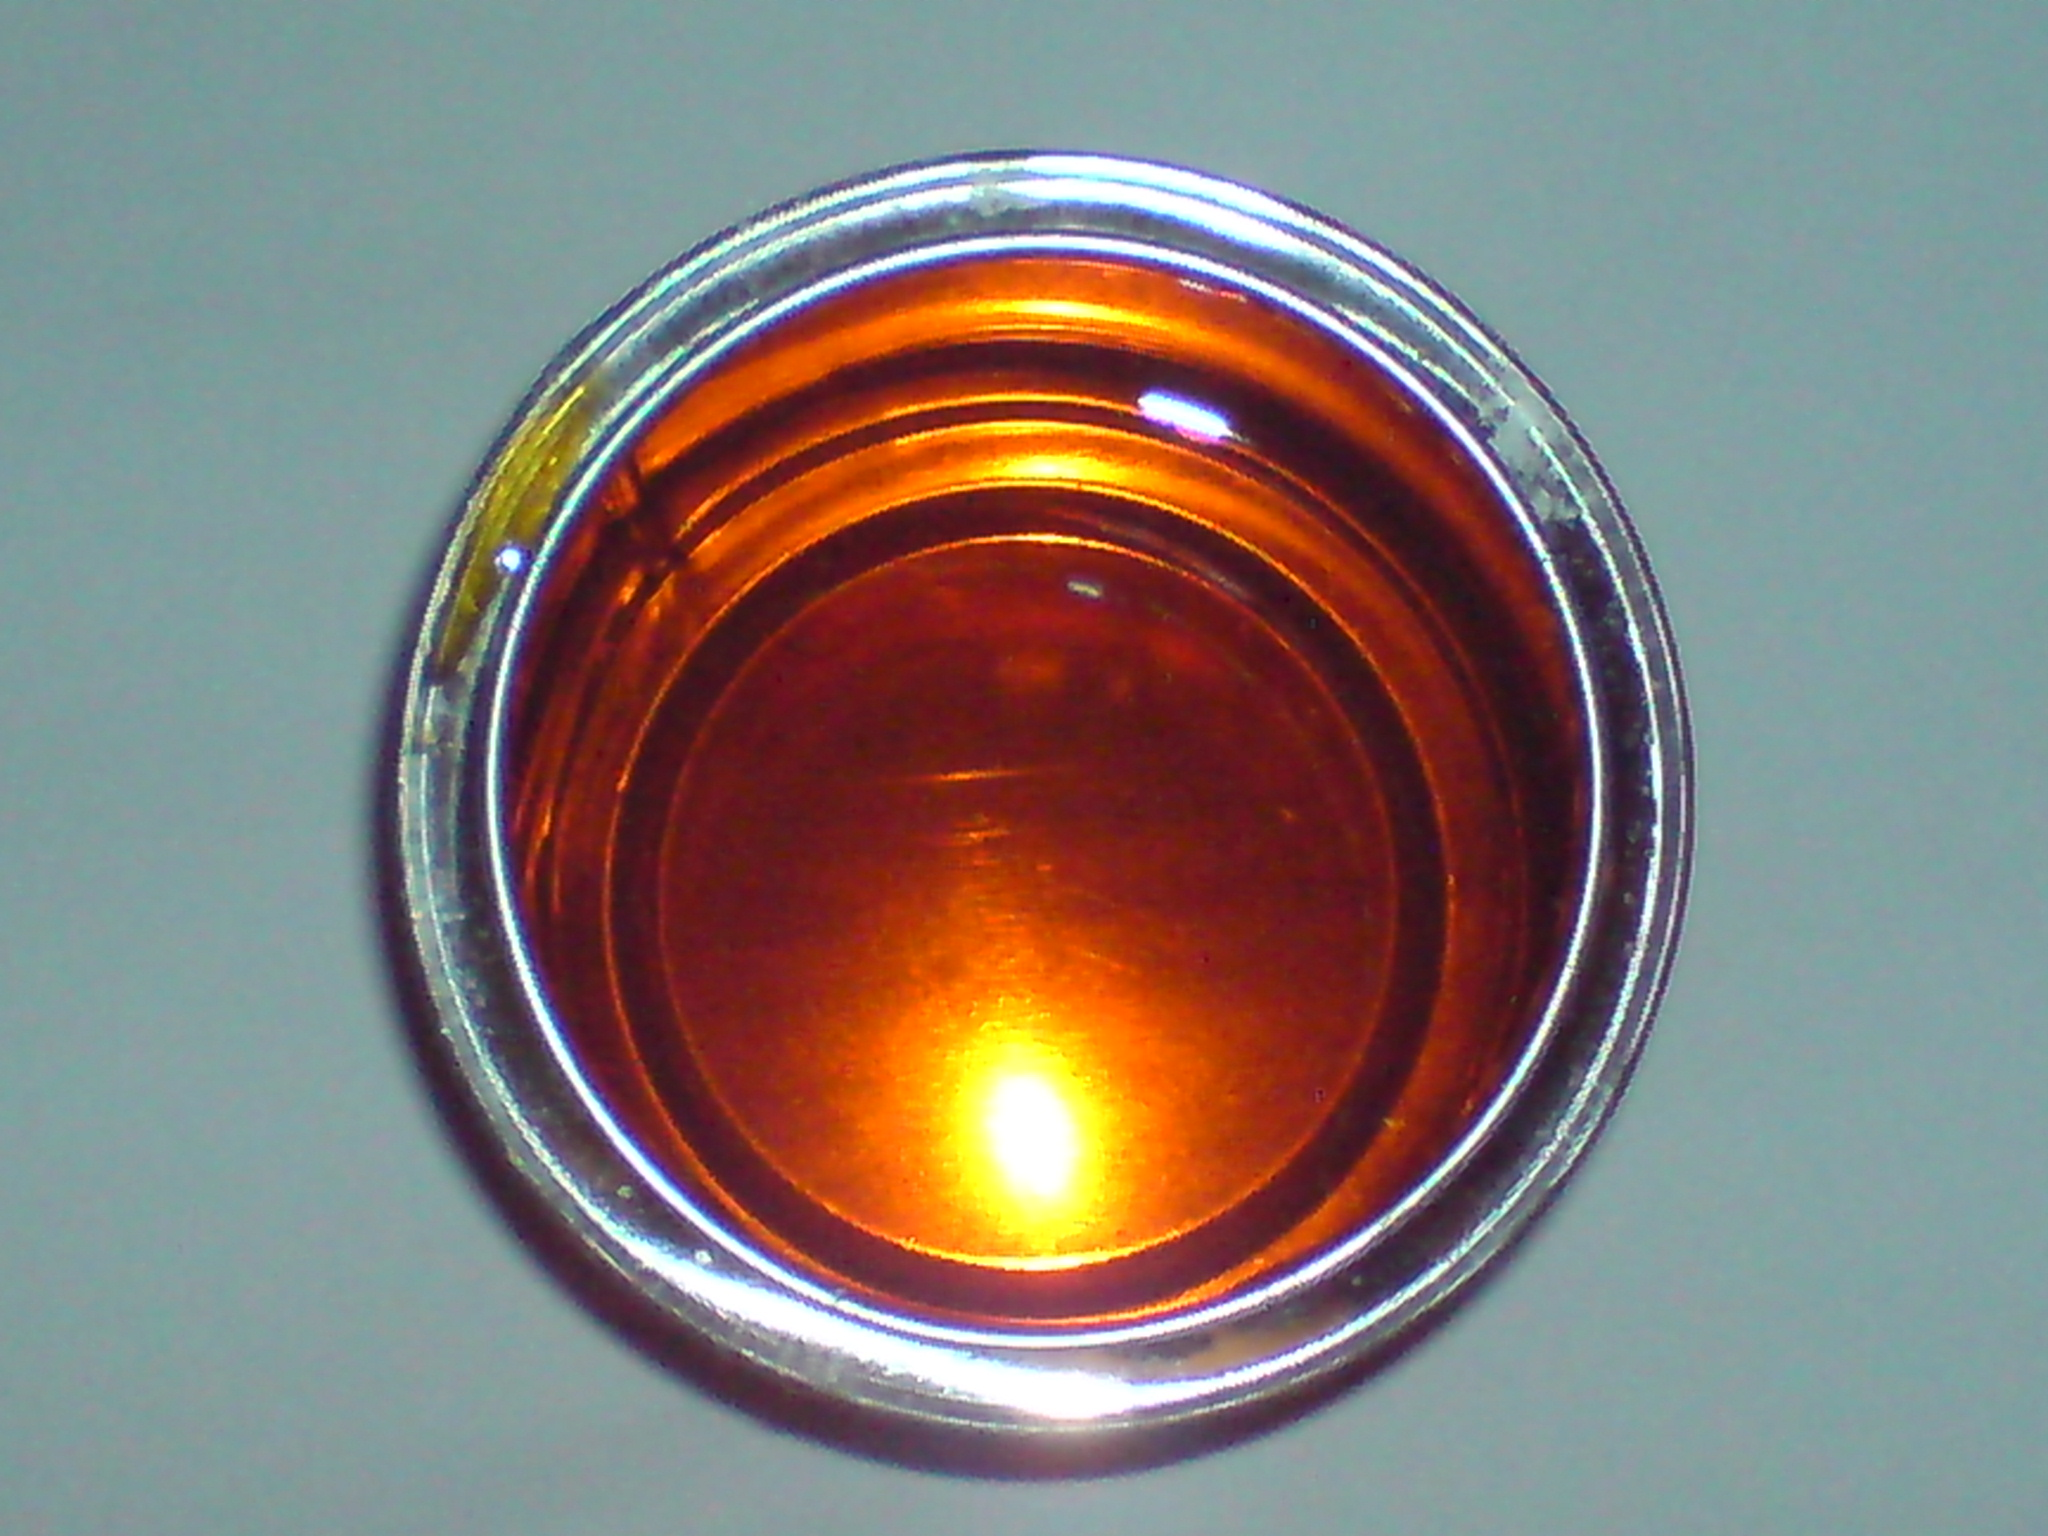 Golden syrup in its tin